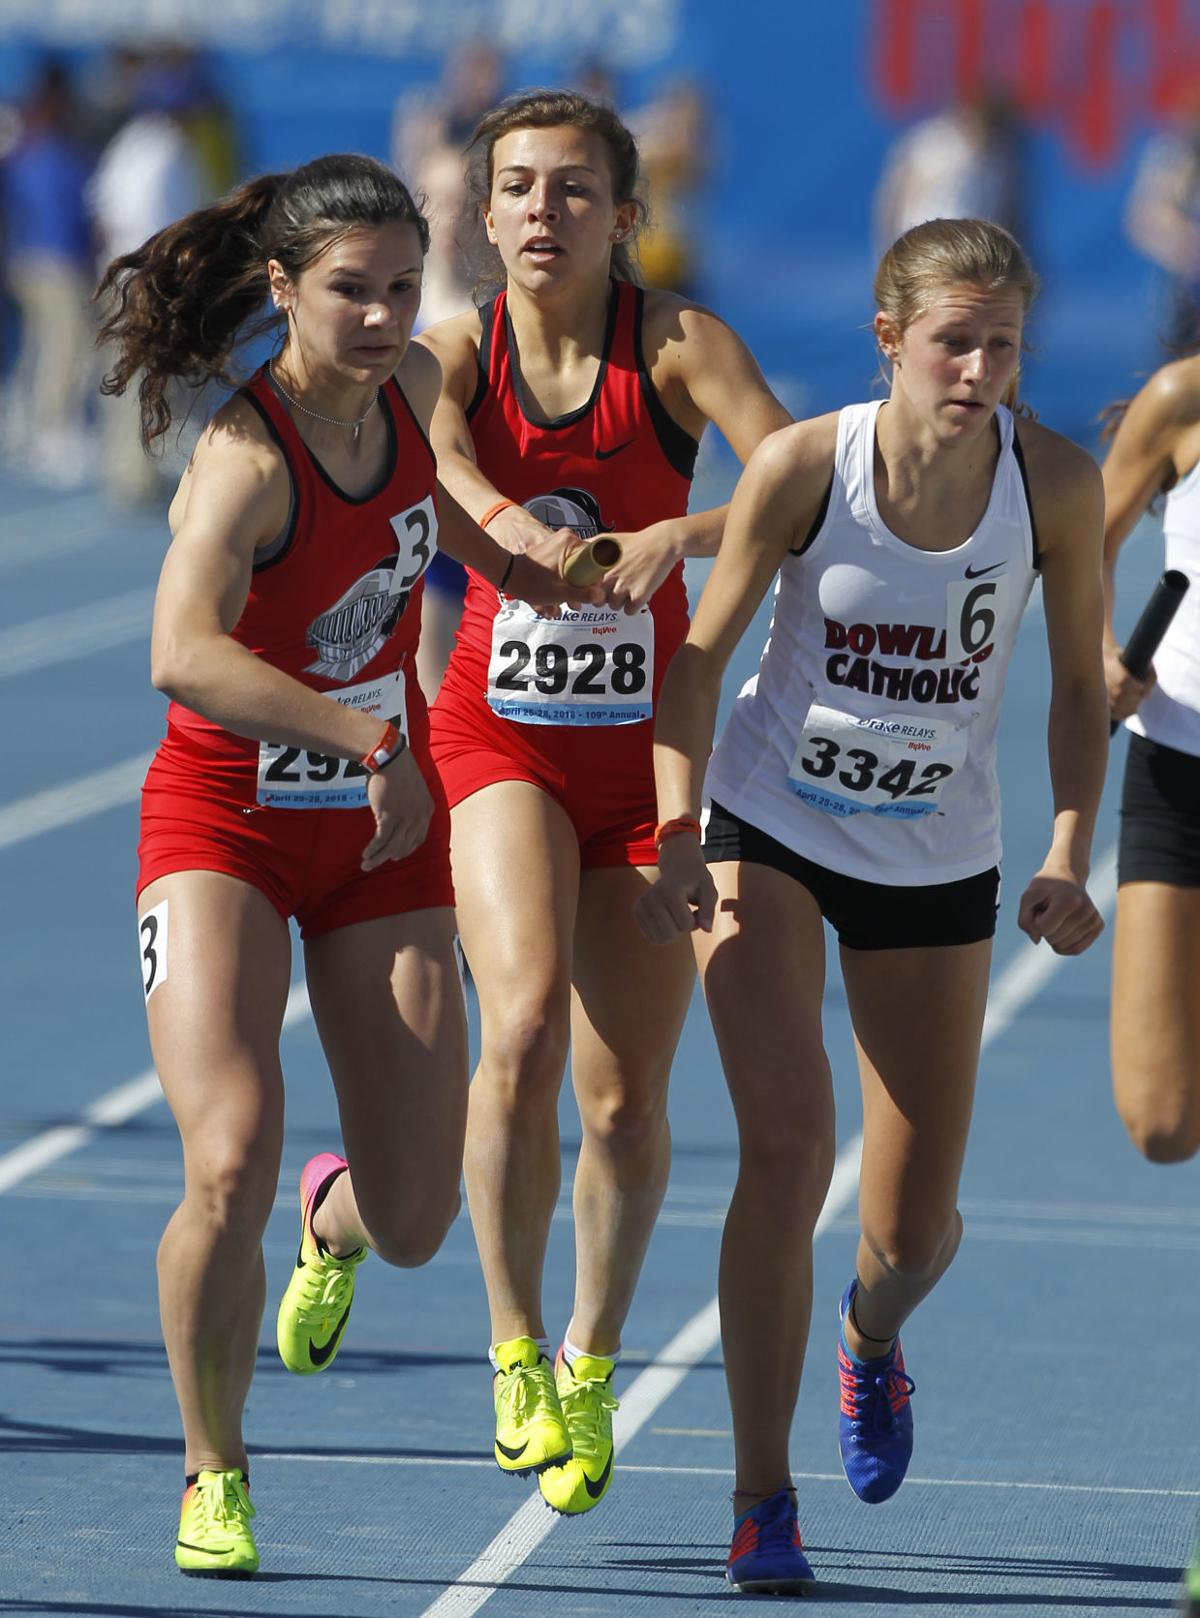 042818mp-Drake-Relays-Girls-4x400-2